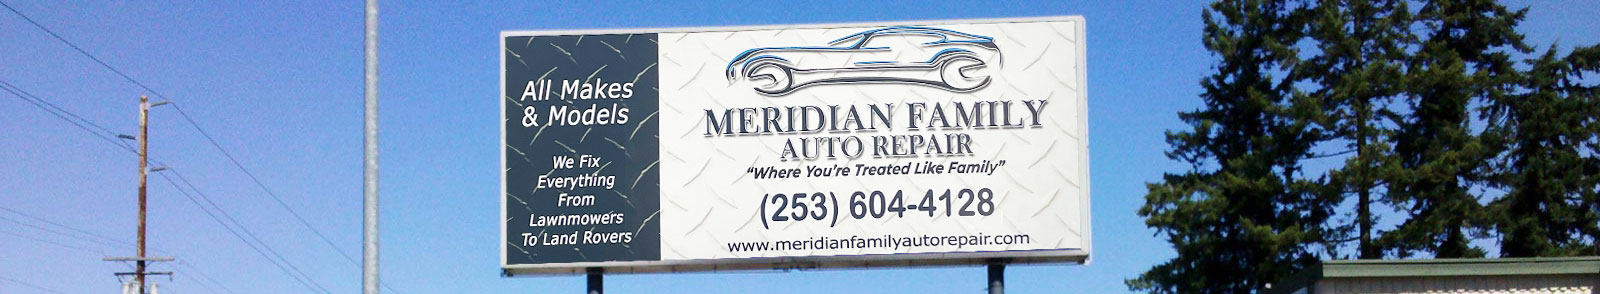 About Meridian Family Auto Repair, auto repair and service in Puyallup WA